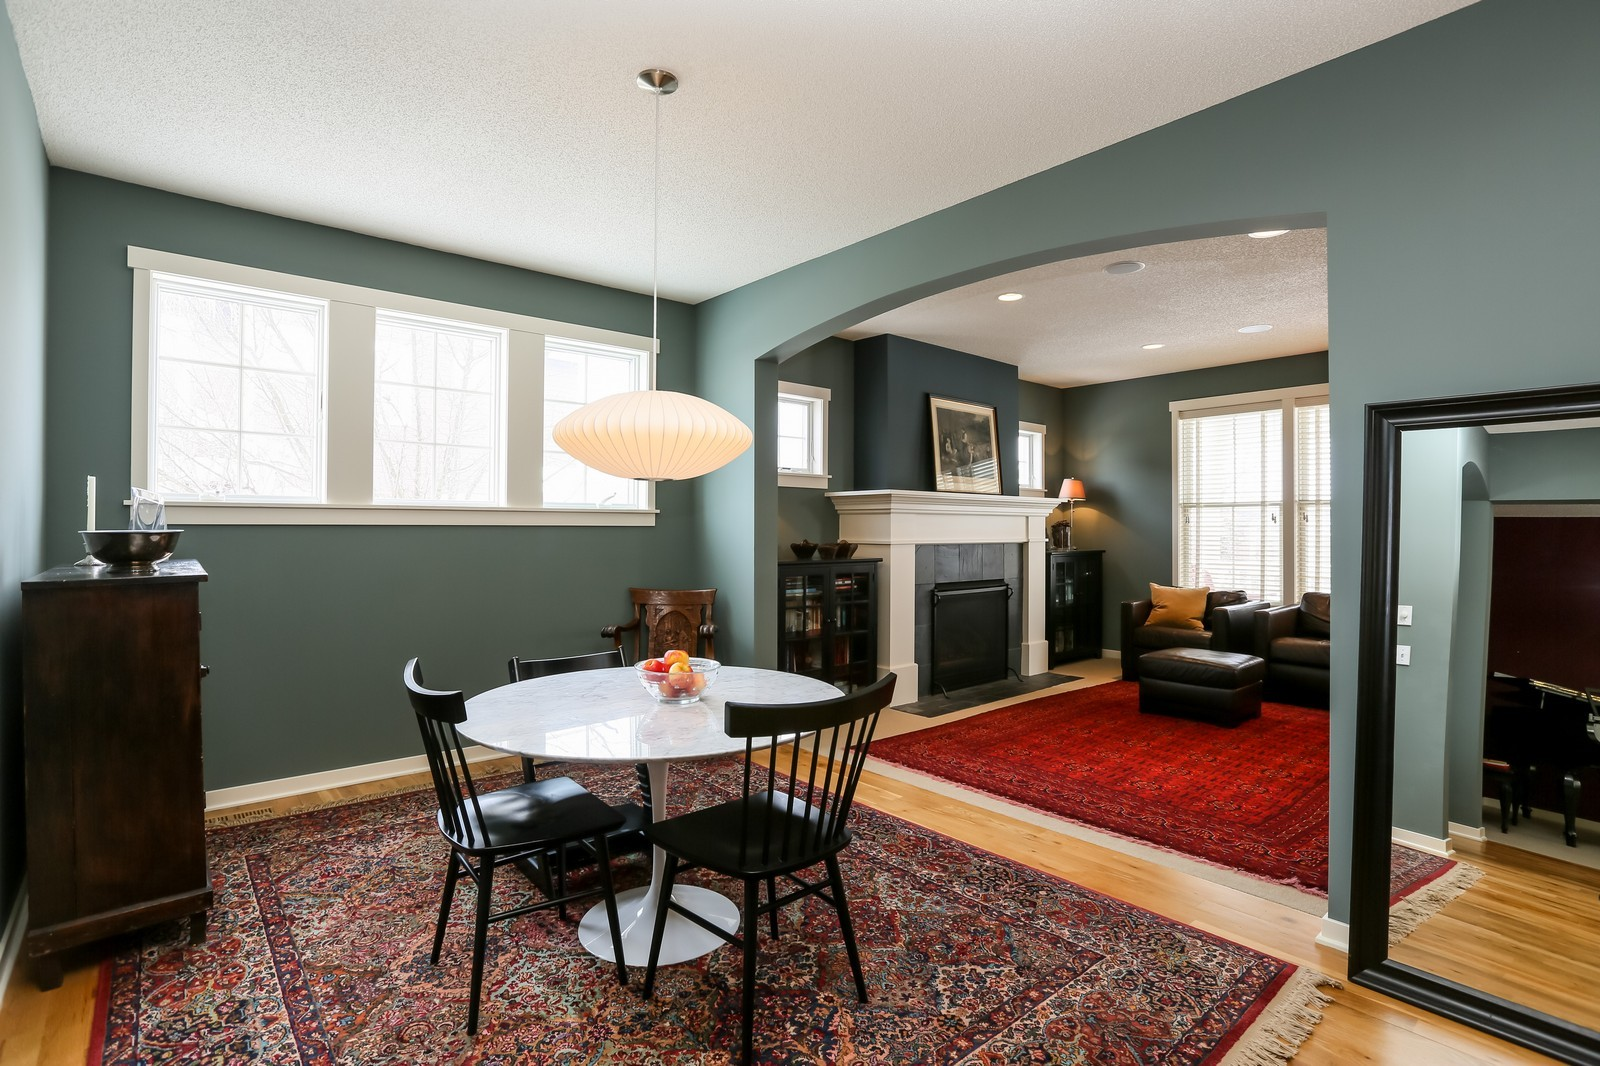 Real Estate Photography - 170 Rutherford Rd, Stillwater, MN, 55082 - Dining Room